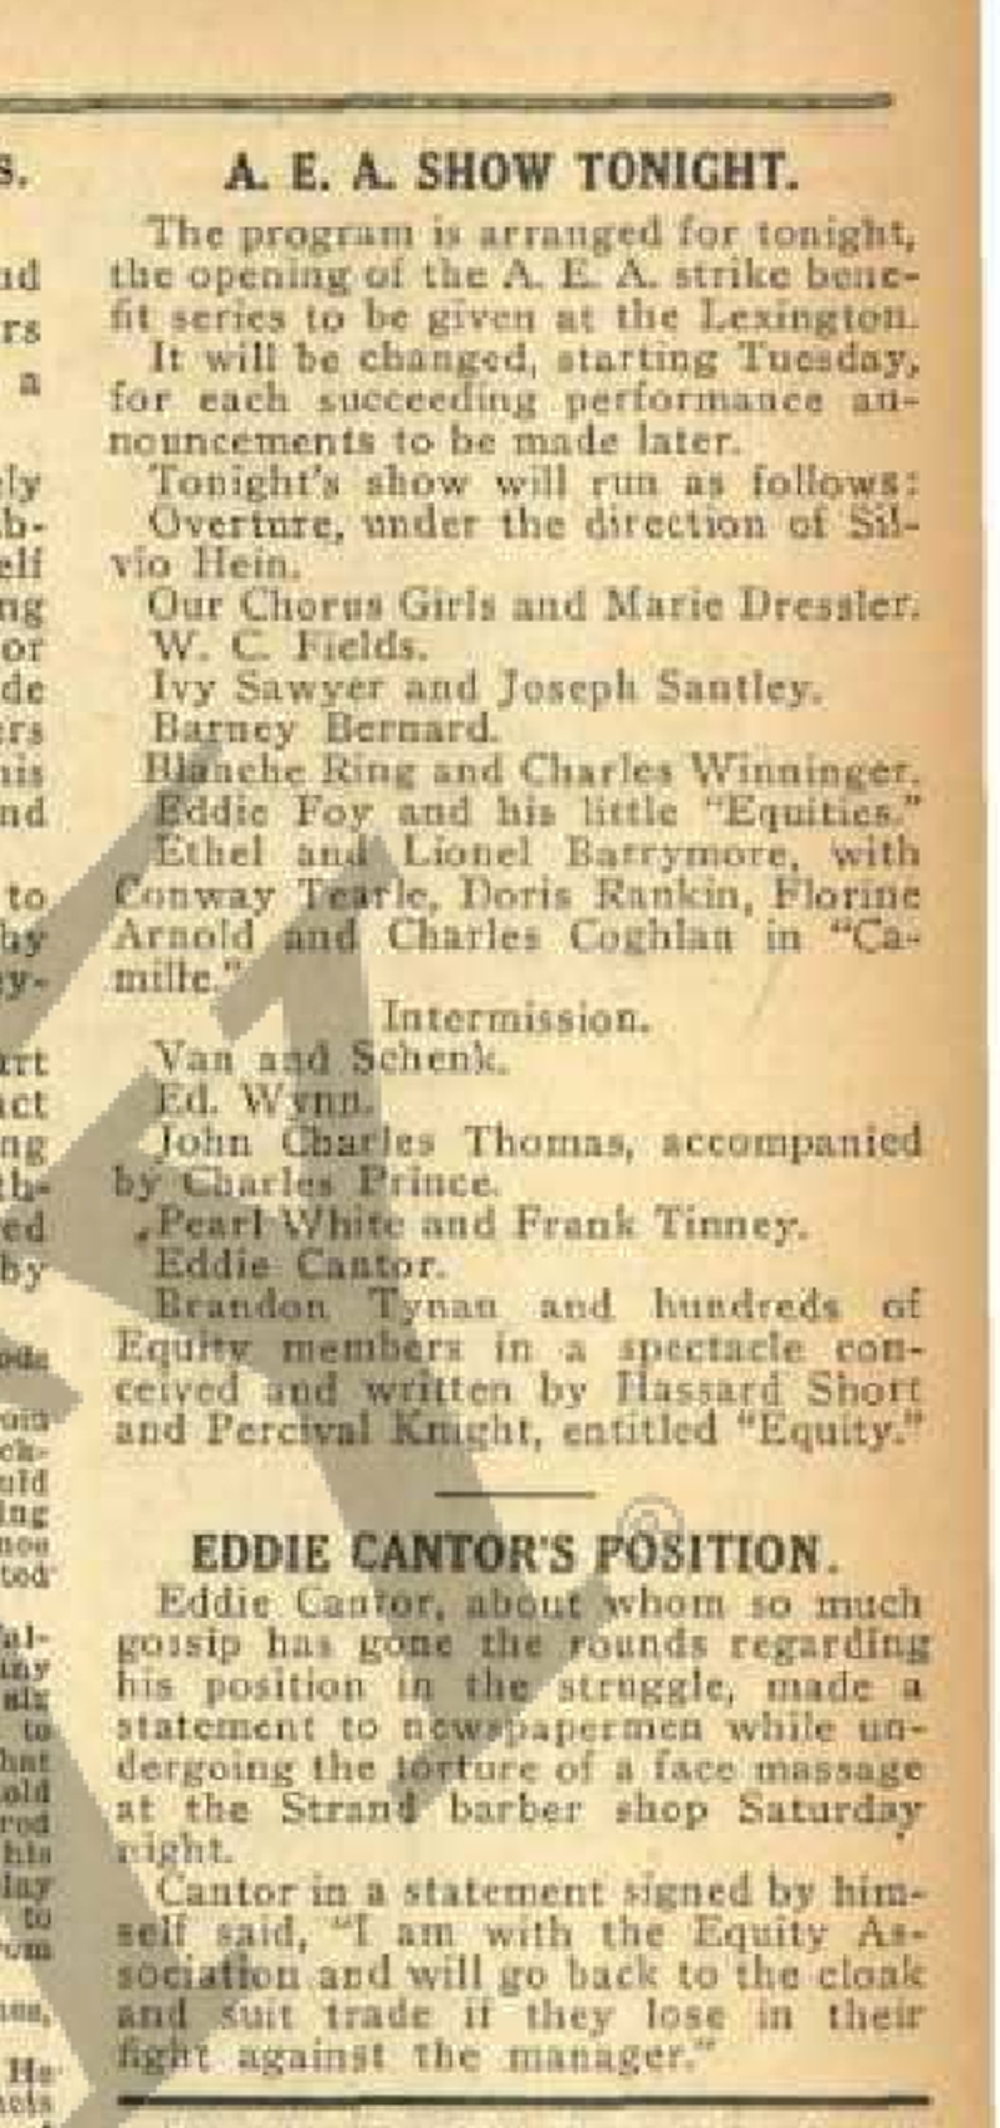 """Eddie Cantor's Position"" (on AEA strike)"